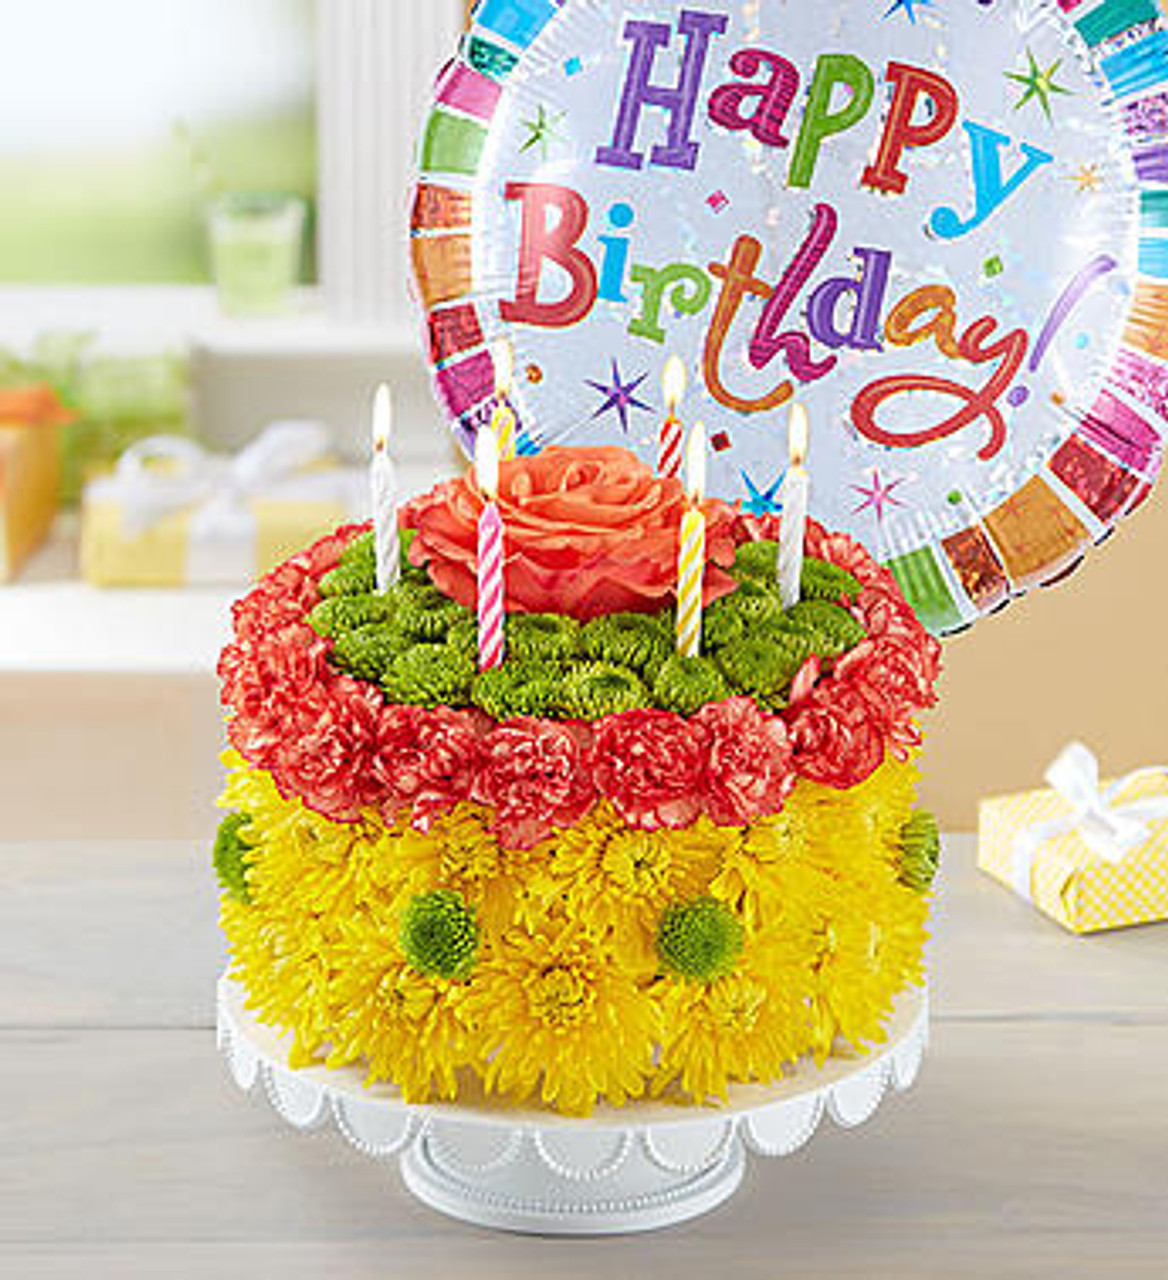 Marvelous Birthday Wishes Flower Cake Yellow Conroys Flowers Birthday Cards Printable Benkemecafe Filternl